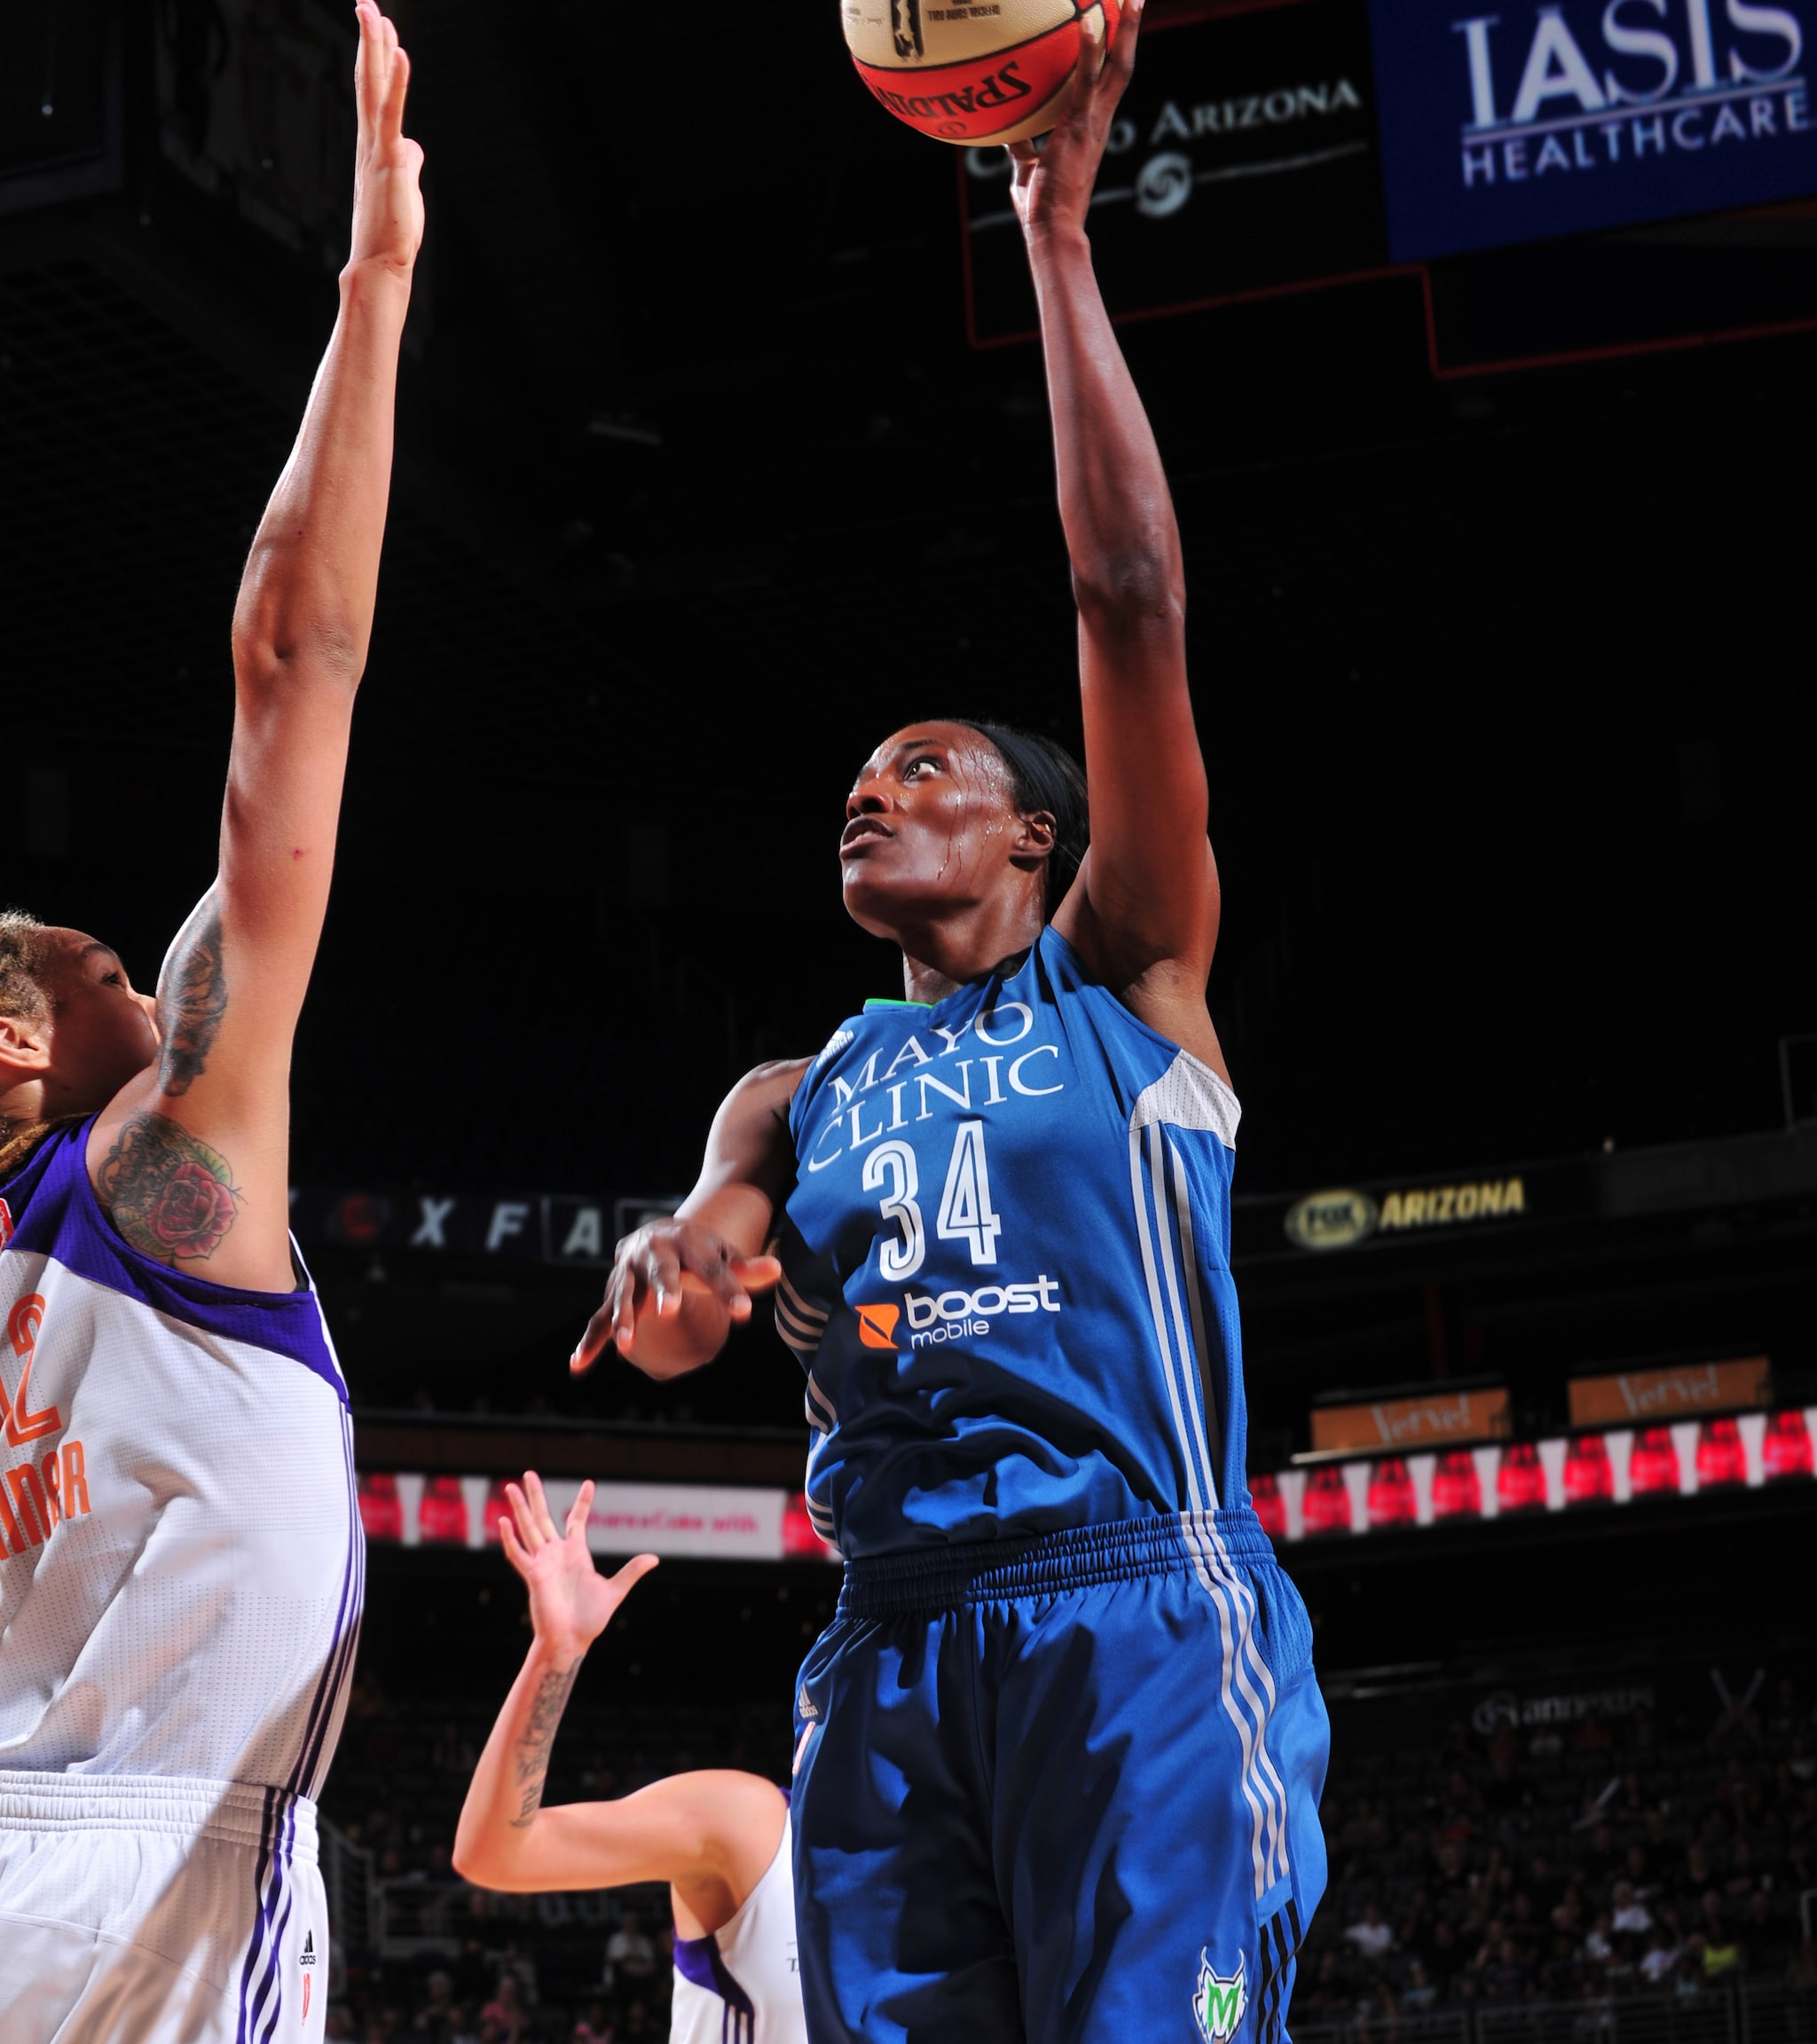 Facing off against one of the best centers in the WNBA in Brittney Griner, Lynx center Sylvia Fowles finished with a double-double, notching  16 points, 12 rebounds and two blocked shots.